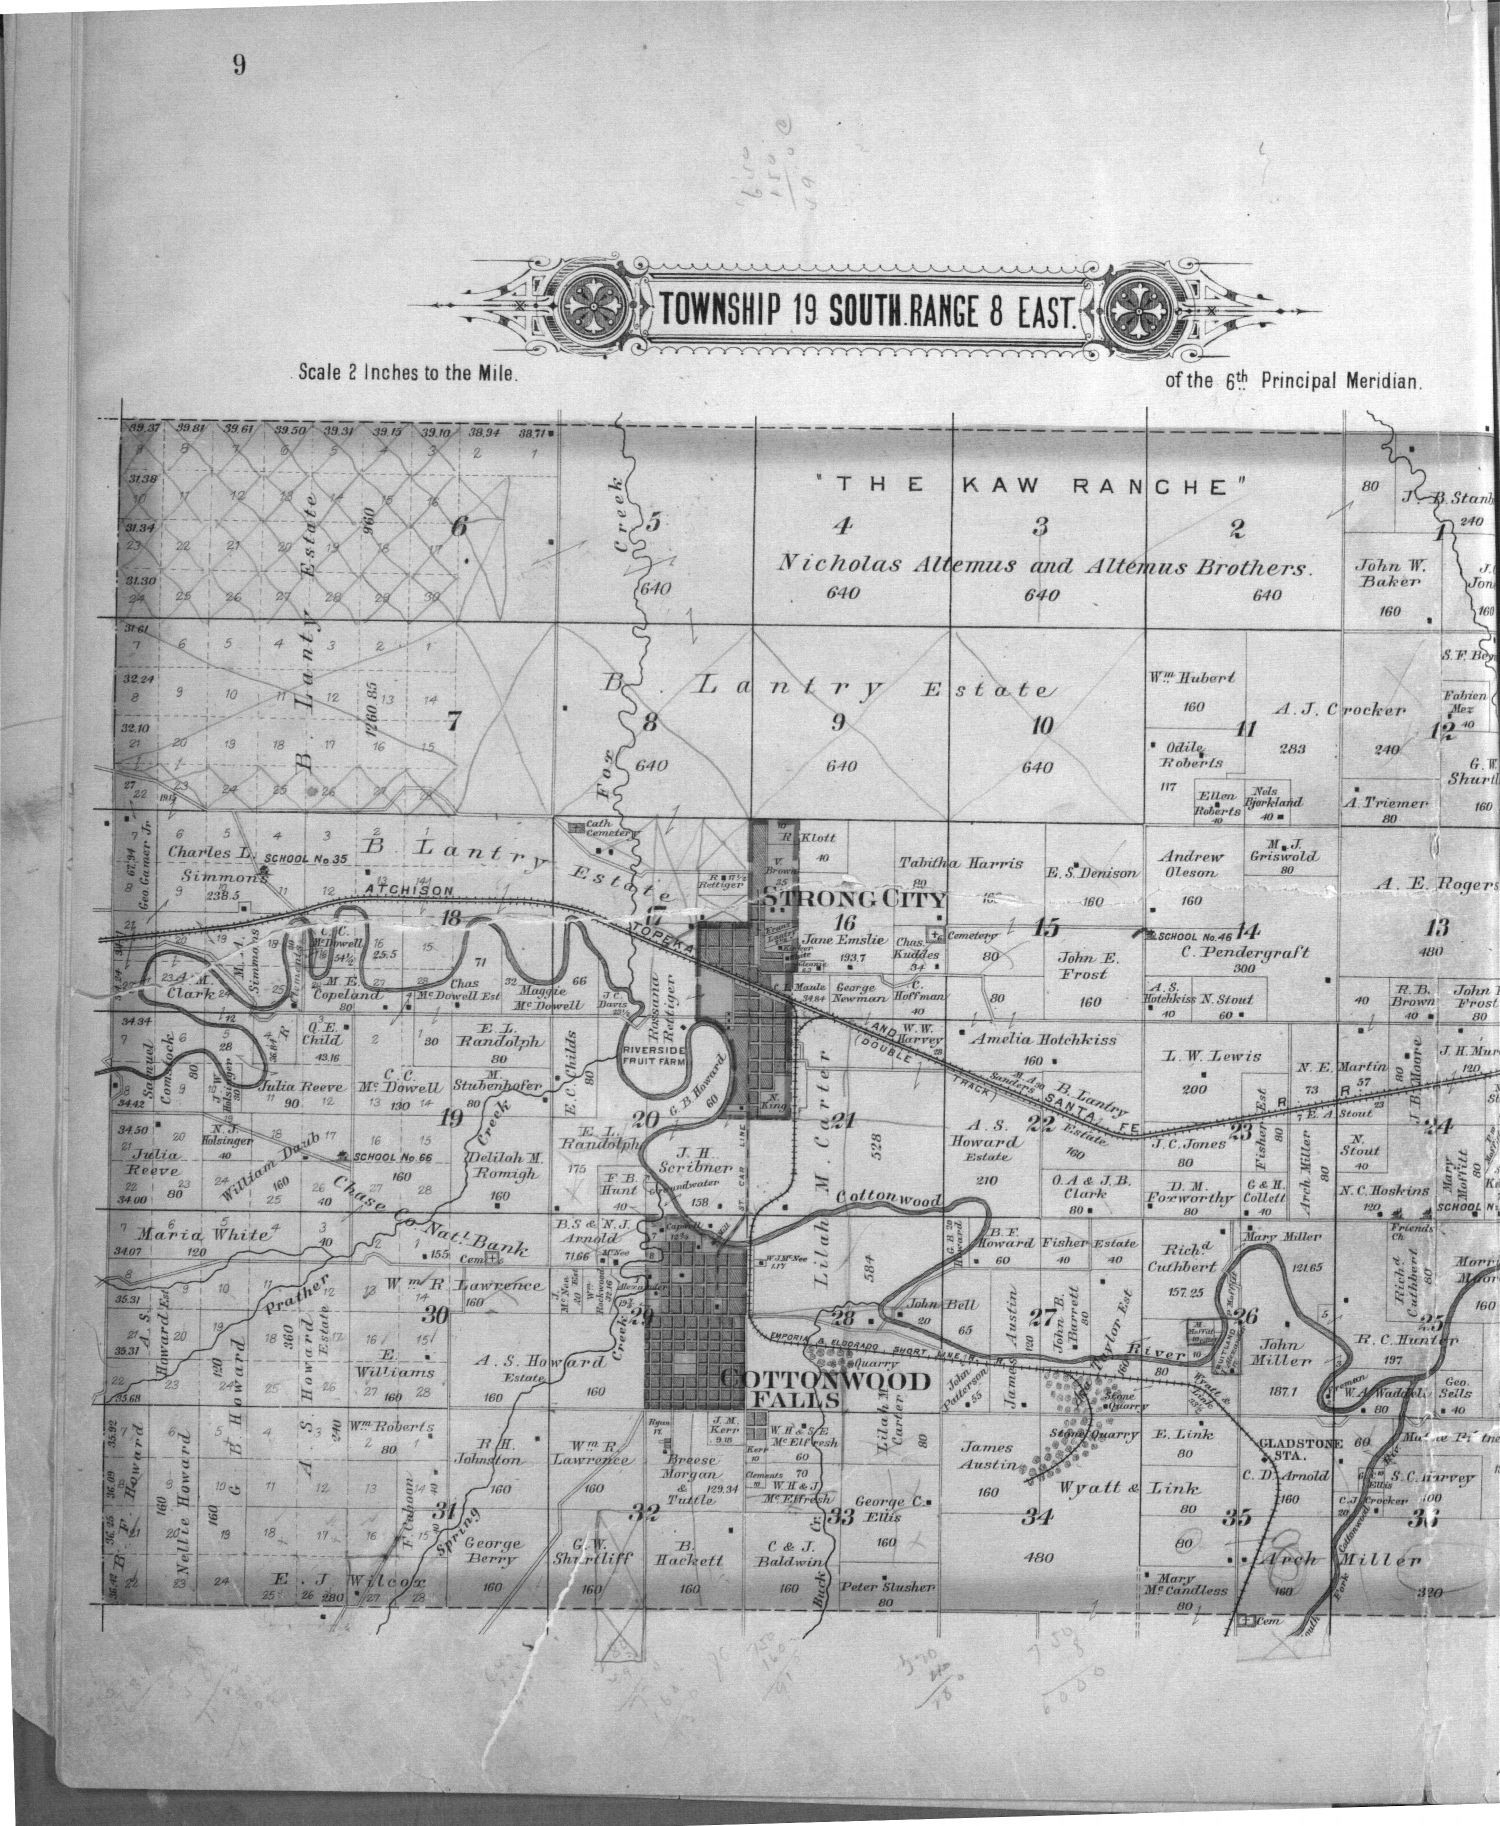 Plat book, Chase County, Kansas - 9